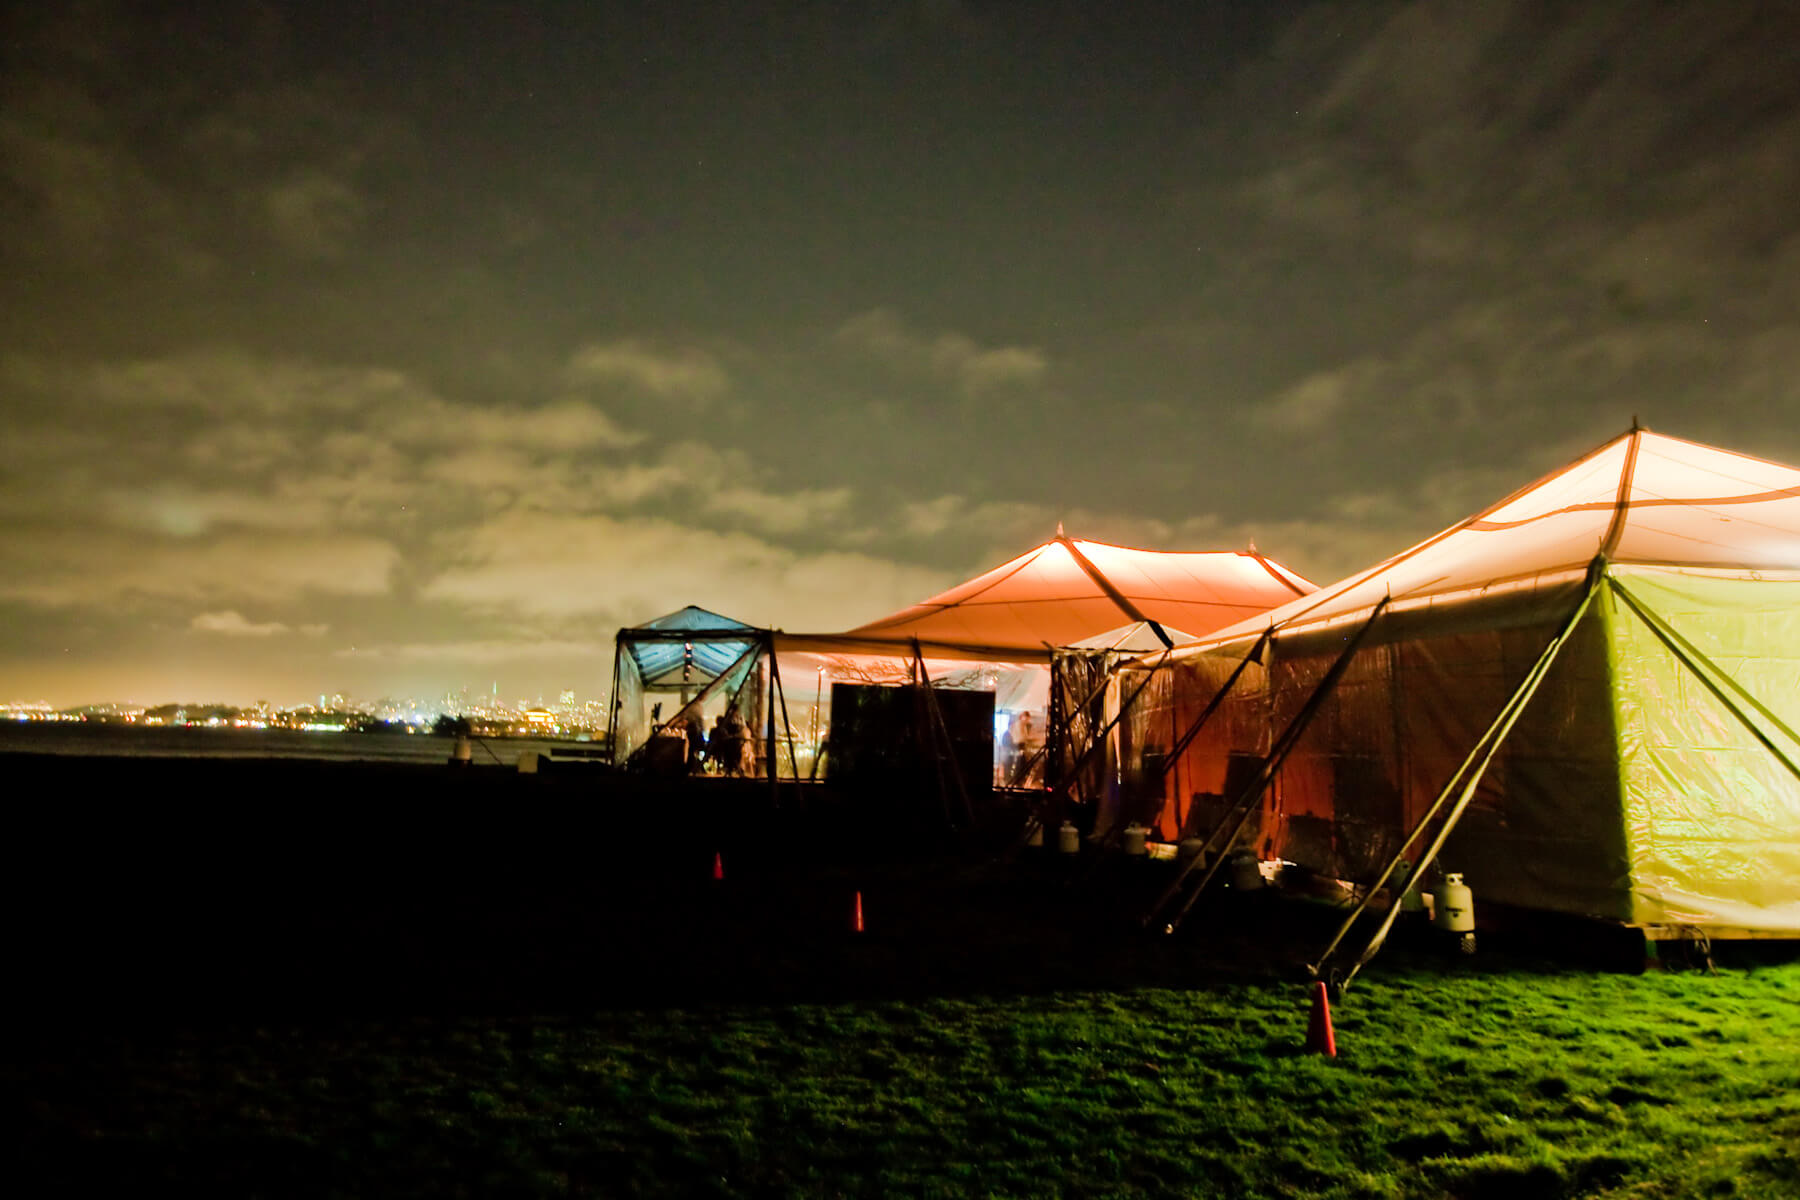 3 blue and orange lit tents in field at night